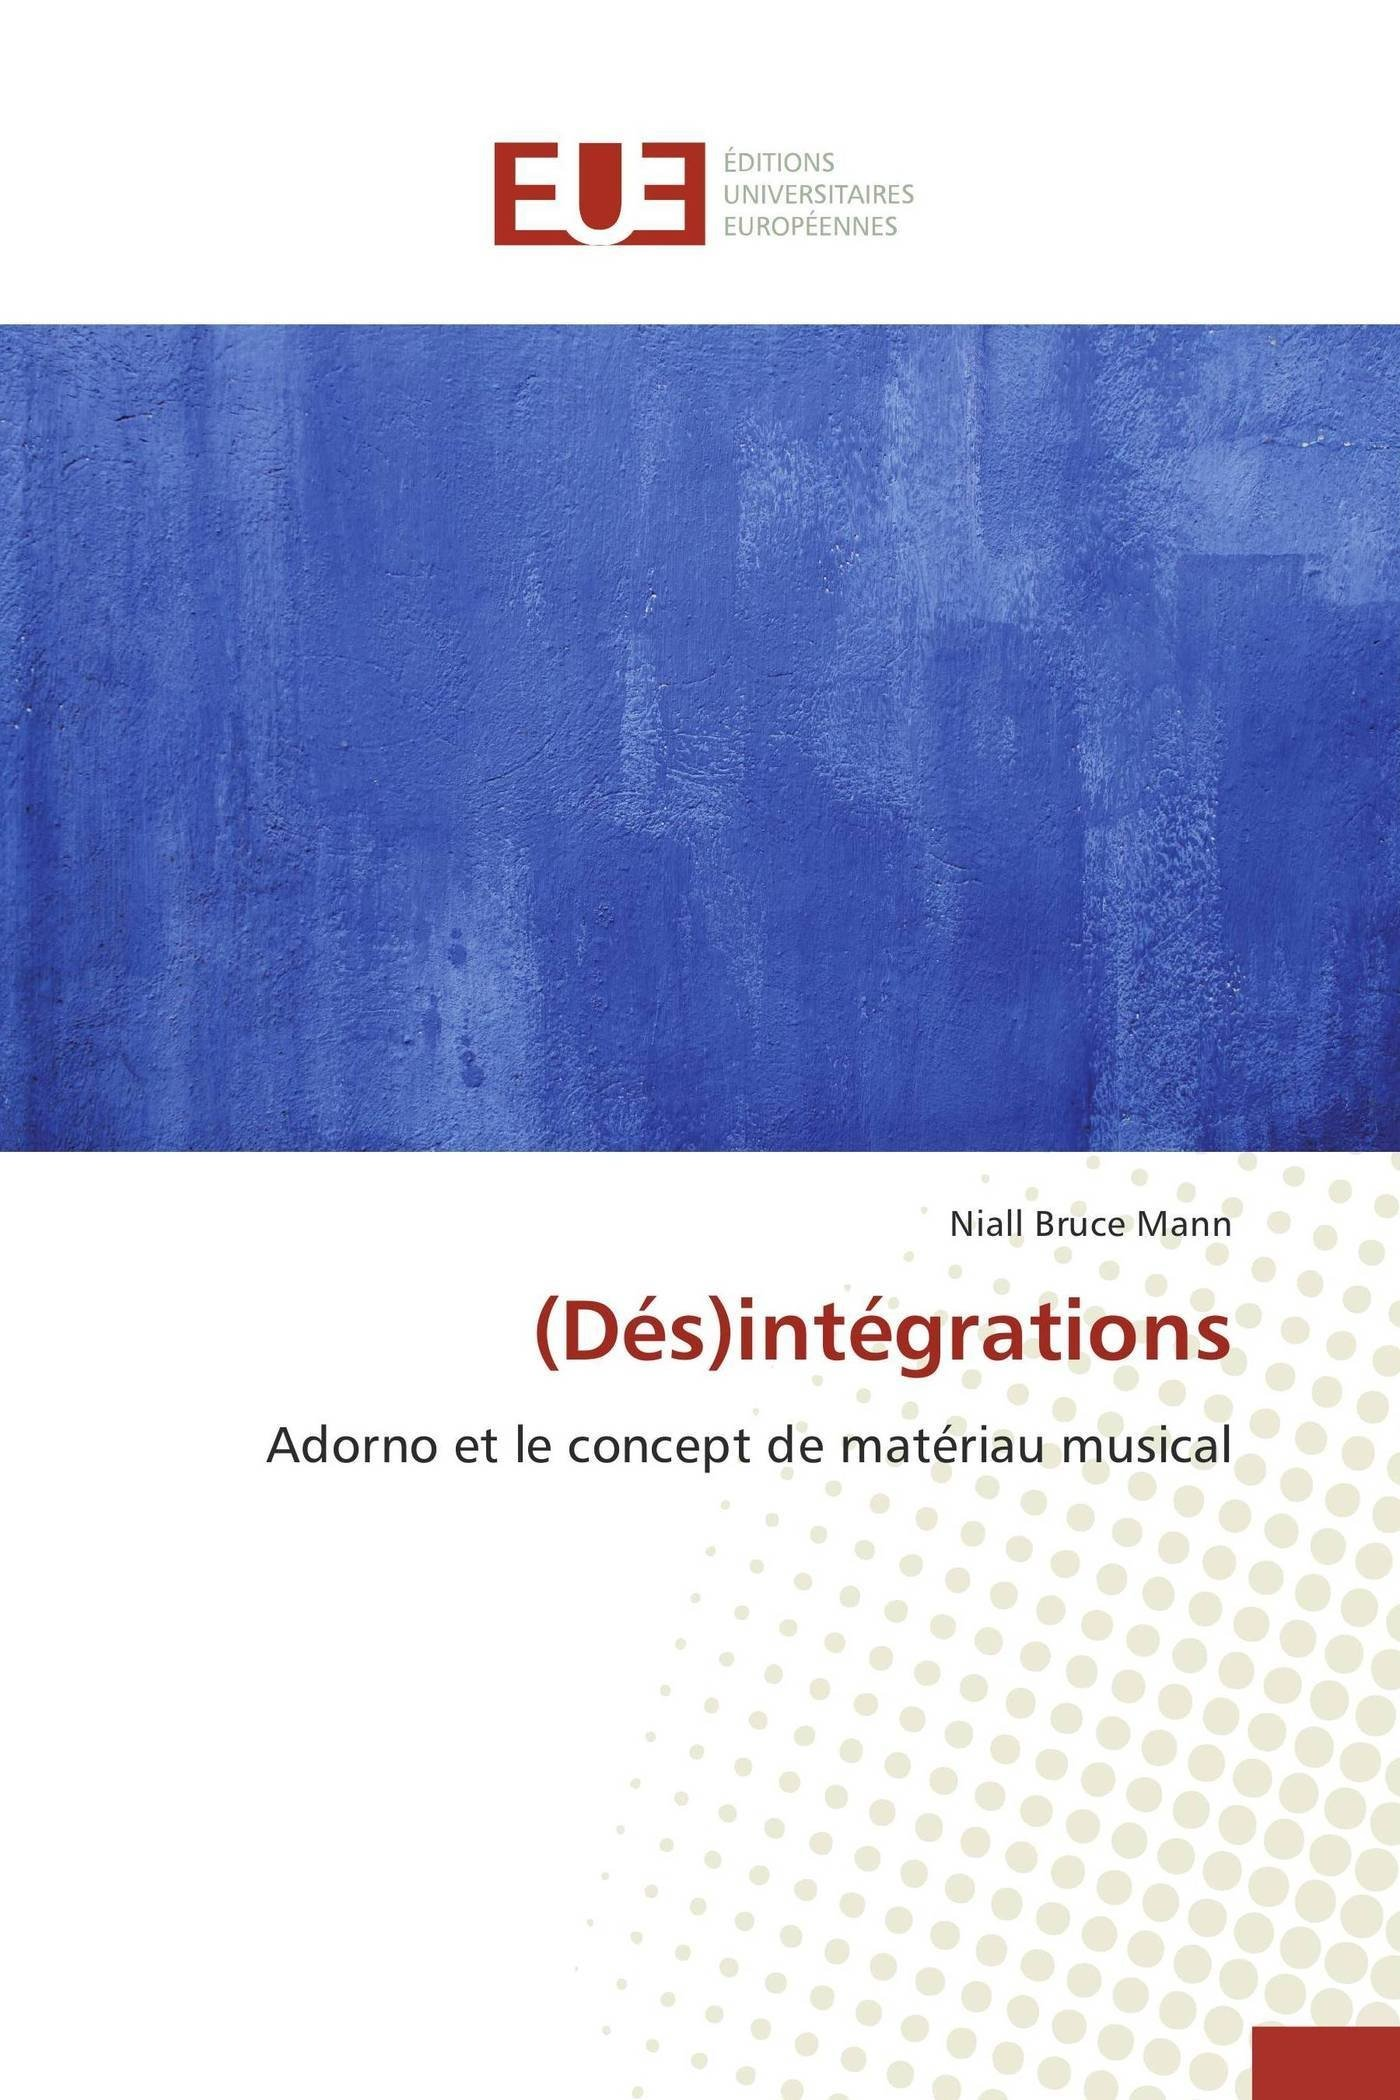 Download (dés)intégrations (Omn.Univ.Europ.) (French Edition) ebook